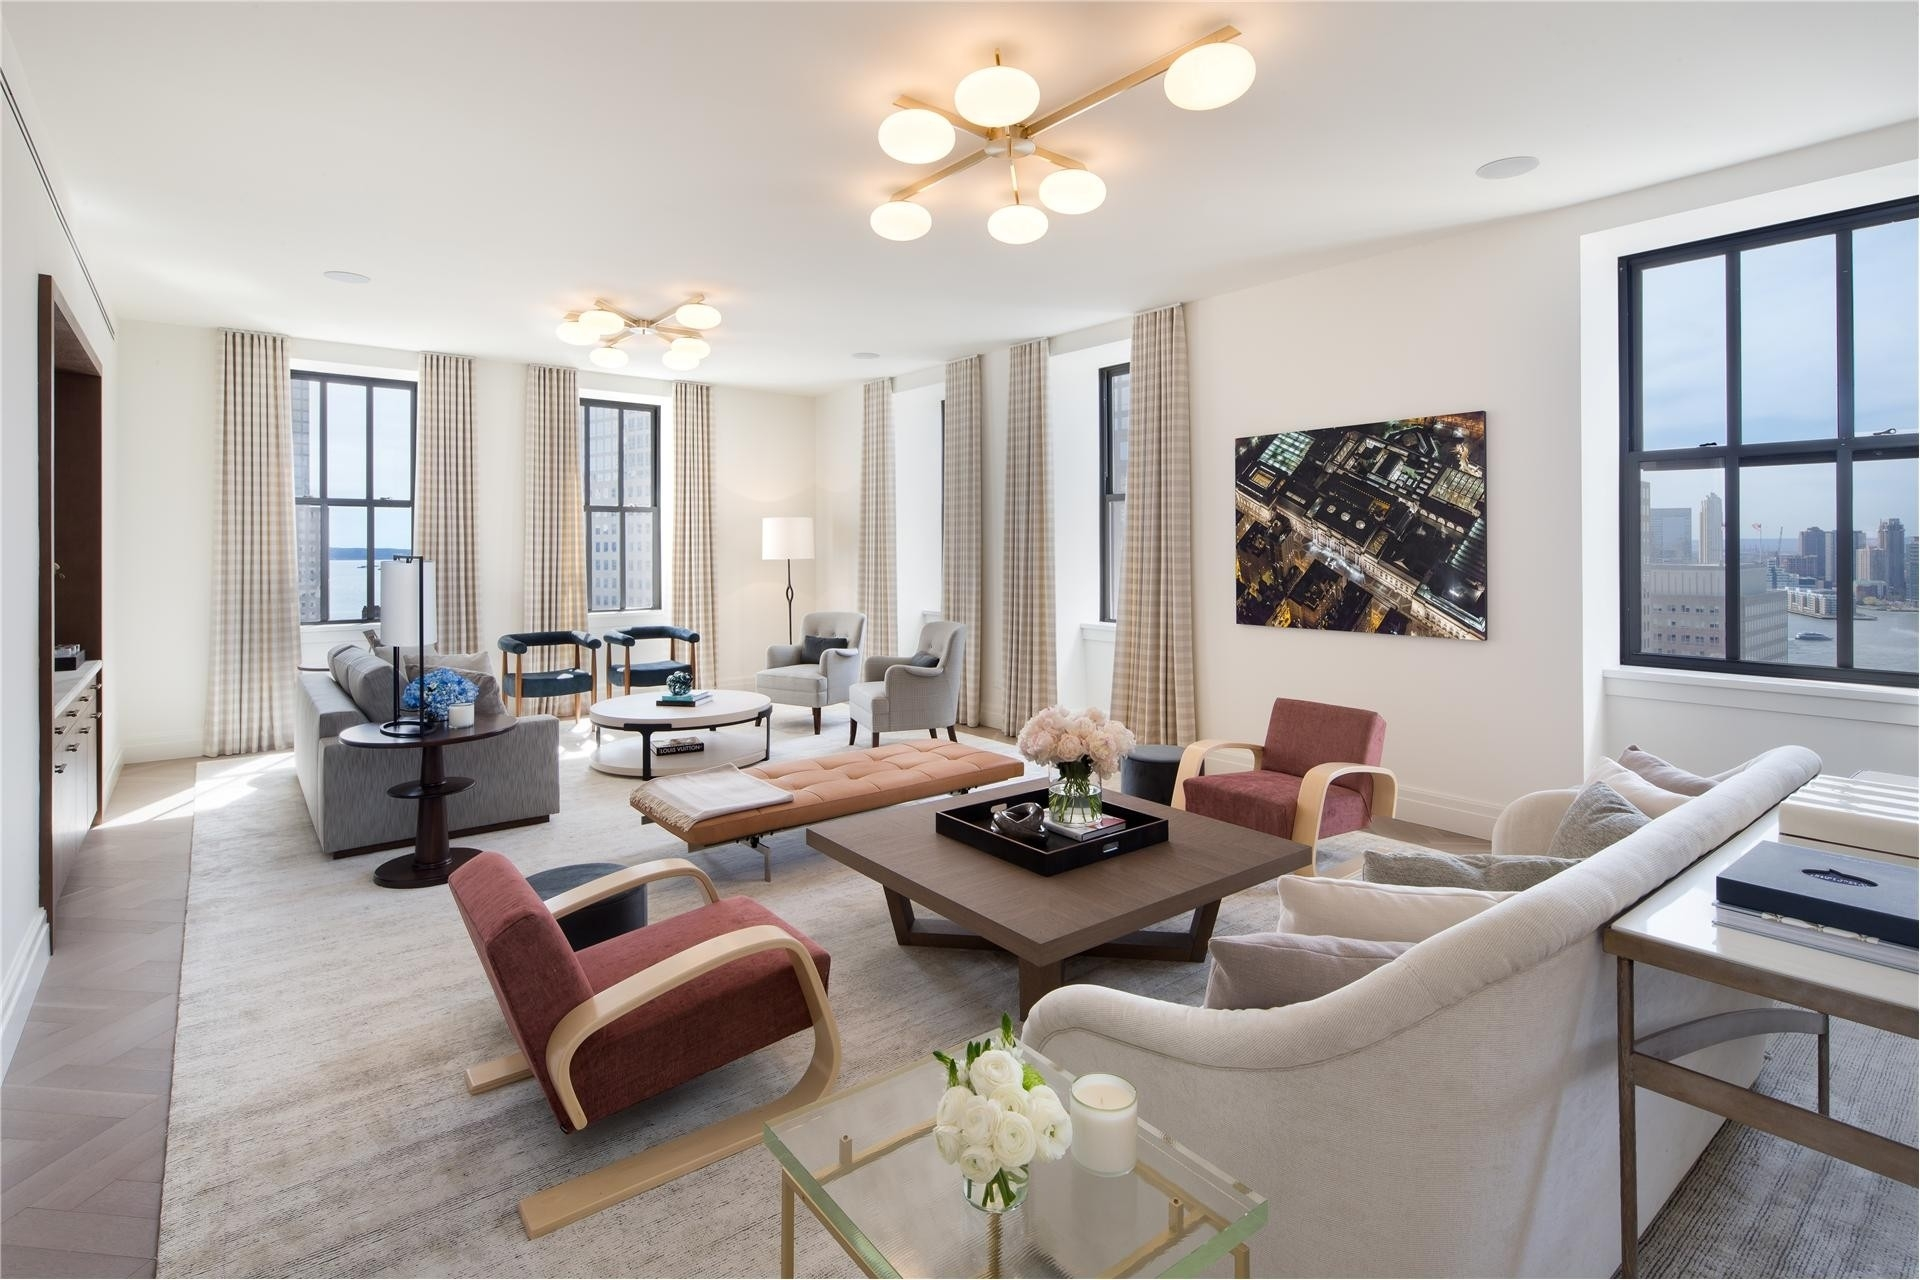 Condominium at One Hundred Barclay Tribeca, 100 Barclay St, 17K Financial District (Wall Street), New York